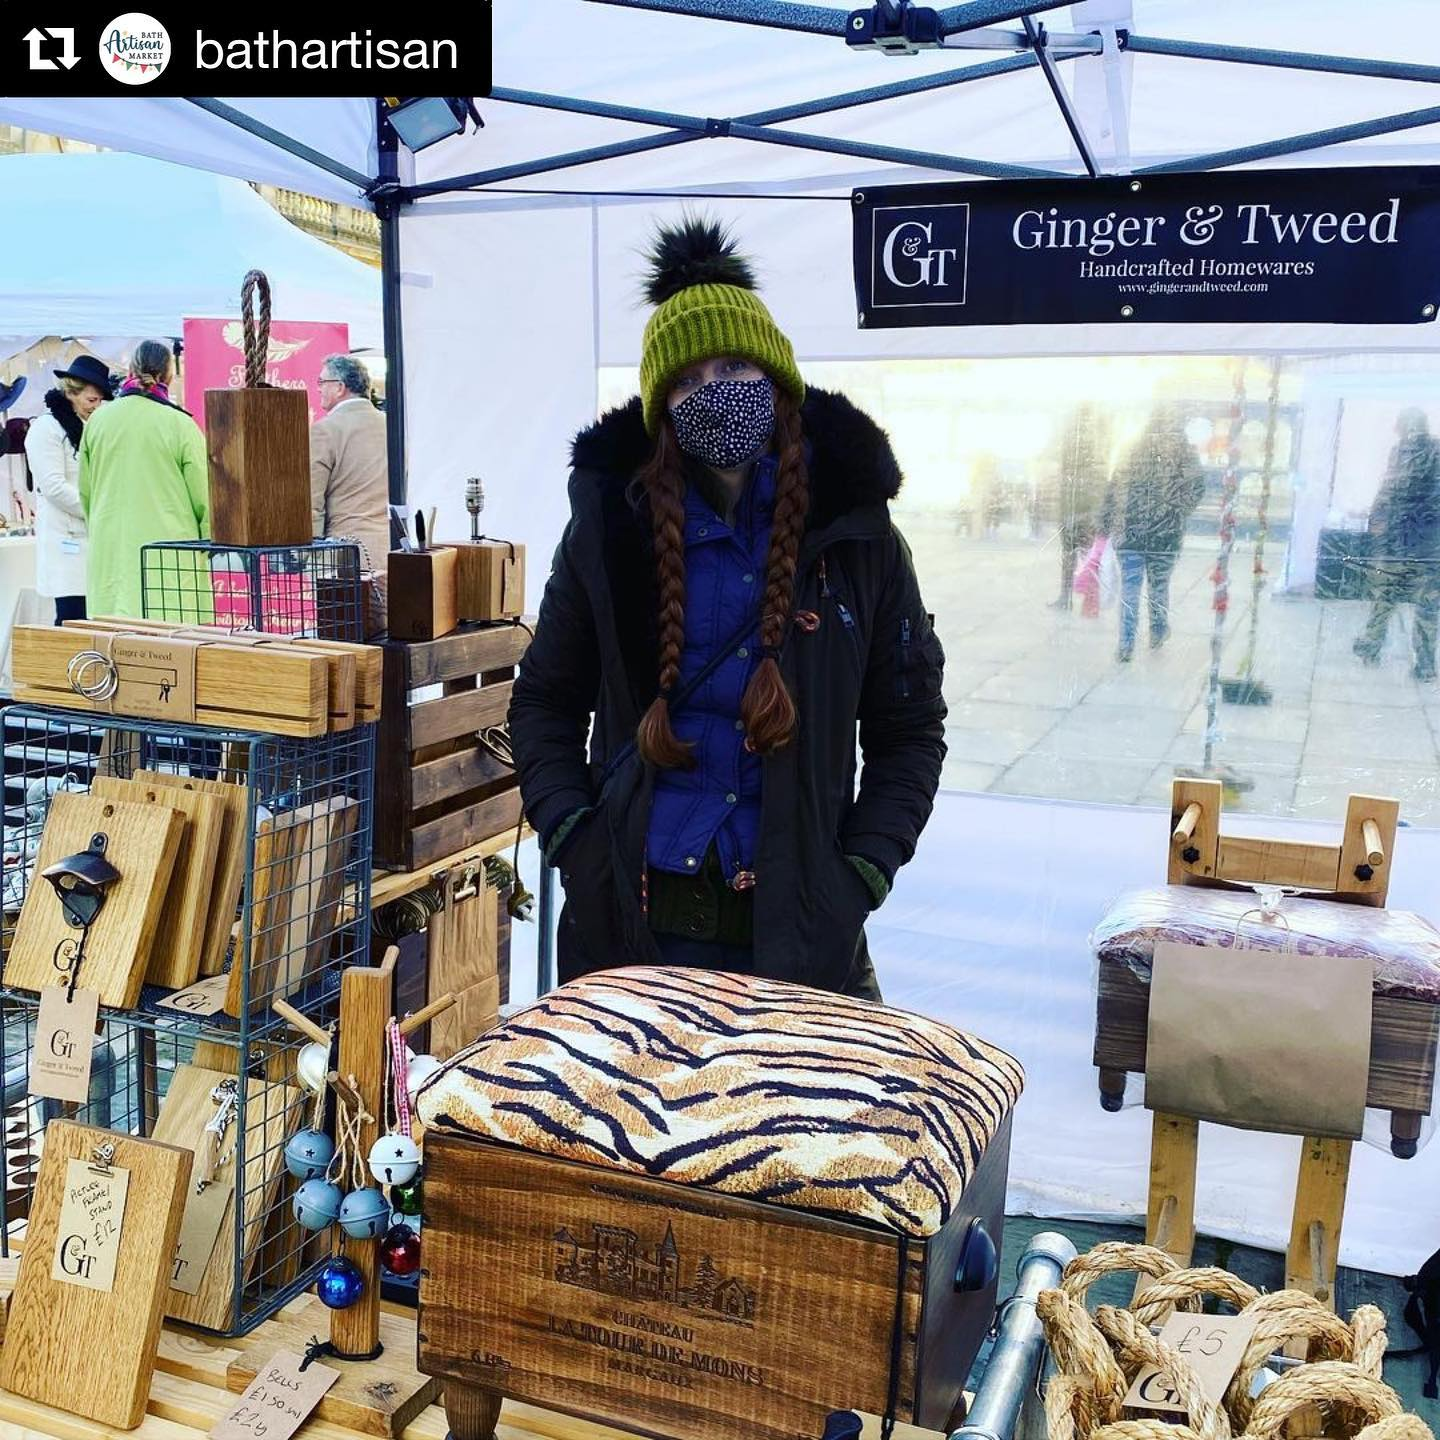 We wanted to thank everyone for coming along and supporting us all yesterday, we had a great day and enjoyed catching up with fellow traders! @alpacasol @lucyhcoddartist @simonwebbartisan @feathersbyhenry lovely to see you!We decided not to go today as our products don't enjoy the rain and we wanted to end the year on yesterday's glorious Bath day. We won't be trading at any more real life markets this year but looking forward to being able to start markets again in early 2020...Photo by @bathartisan #marketday #abbeygreen #bathchristmasmarket #sunday #dayoff #thankyou #2020 #gingerandtweed